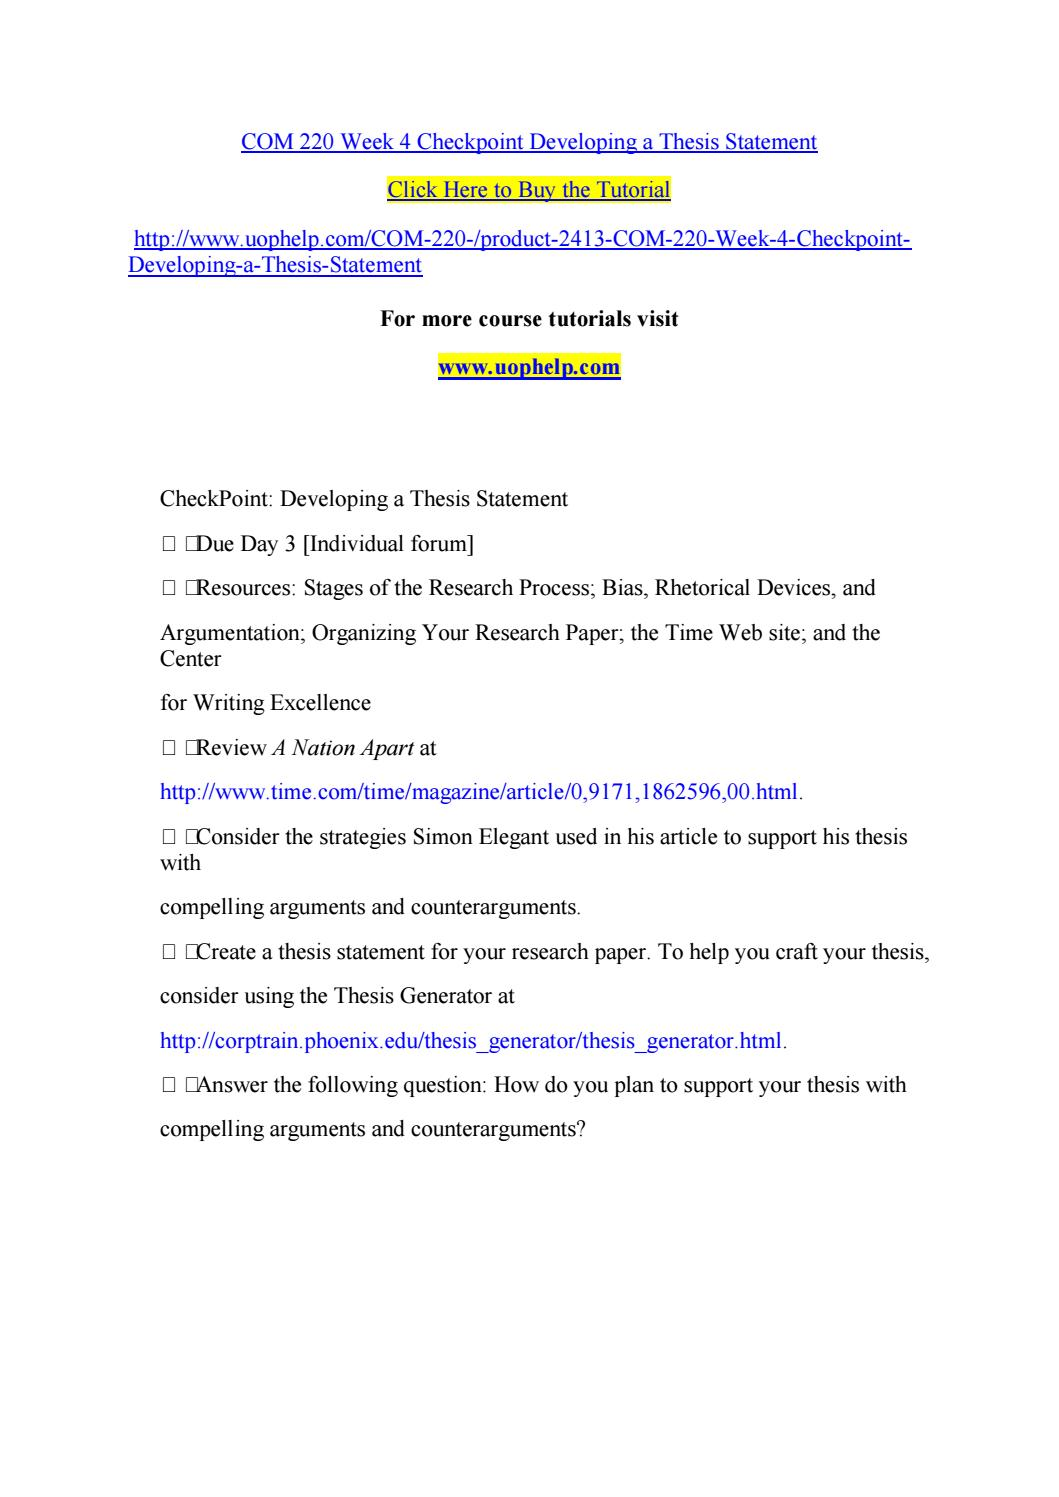 developing a thesis statement checkpoint